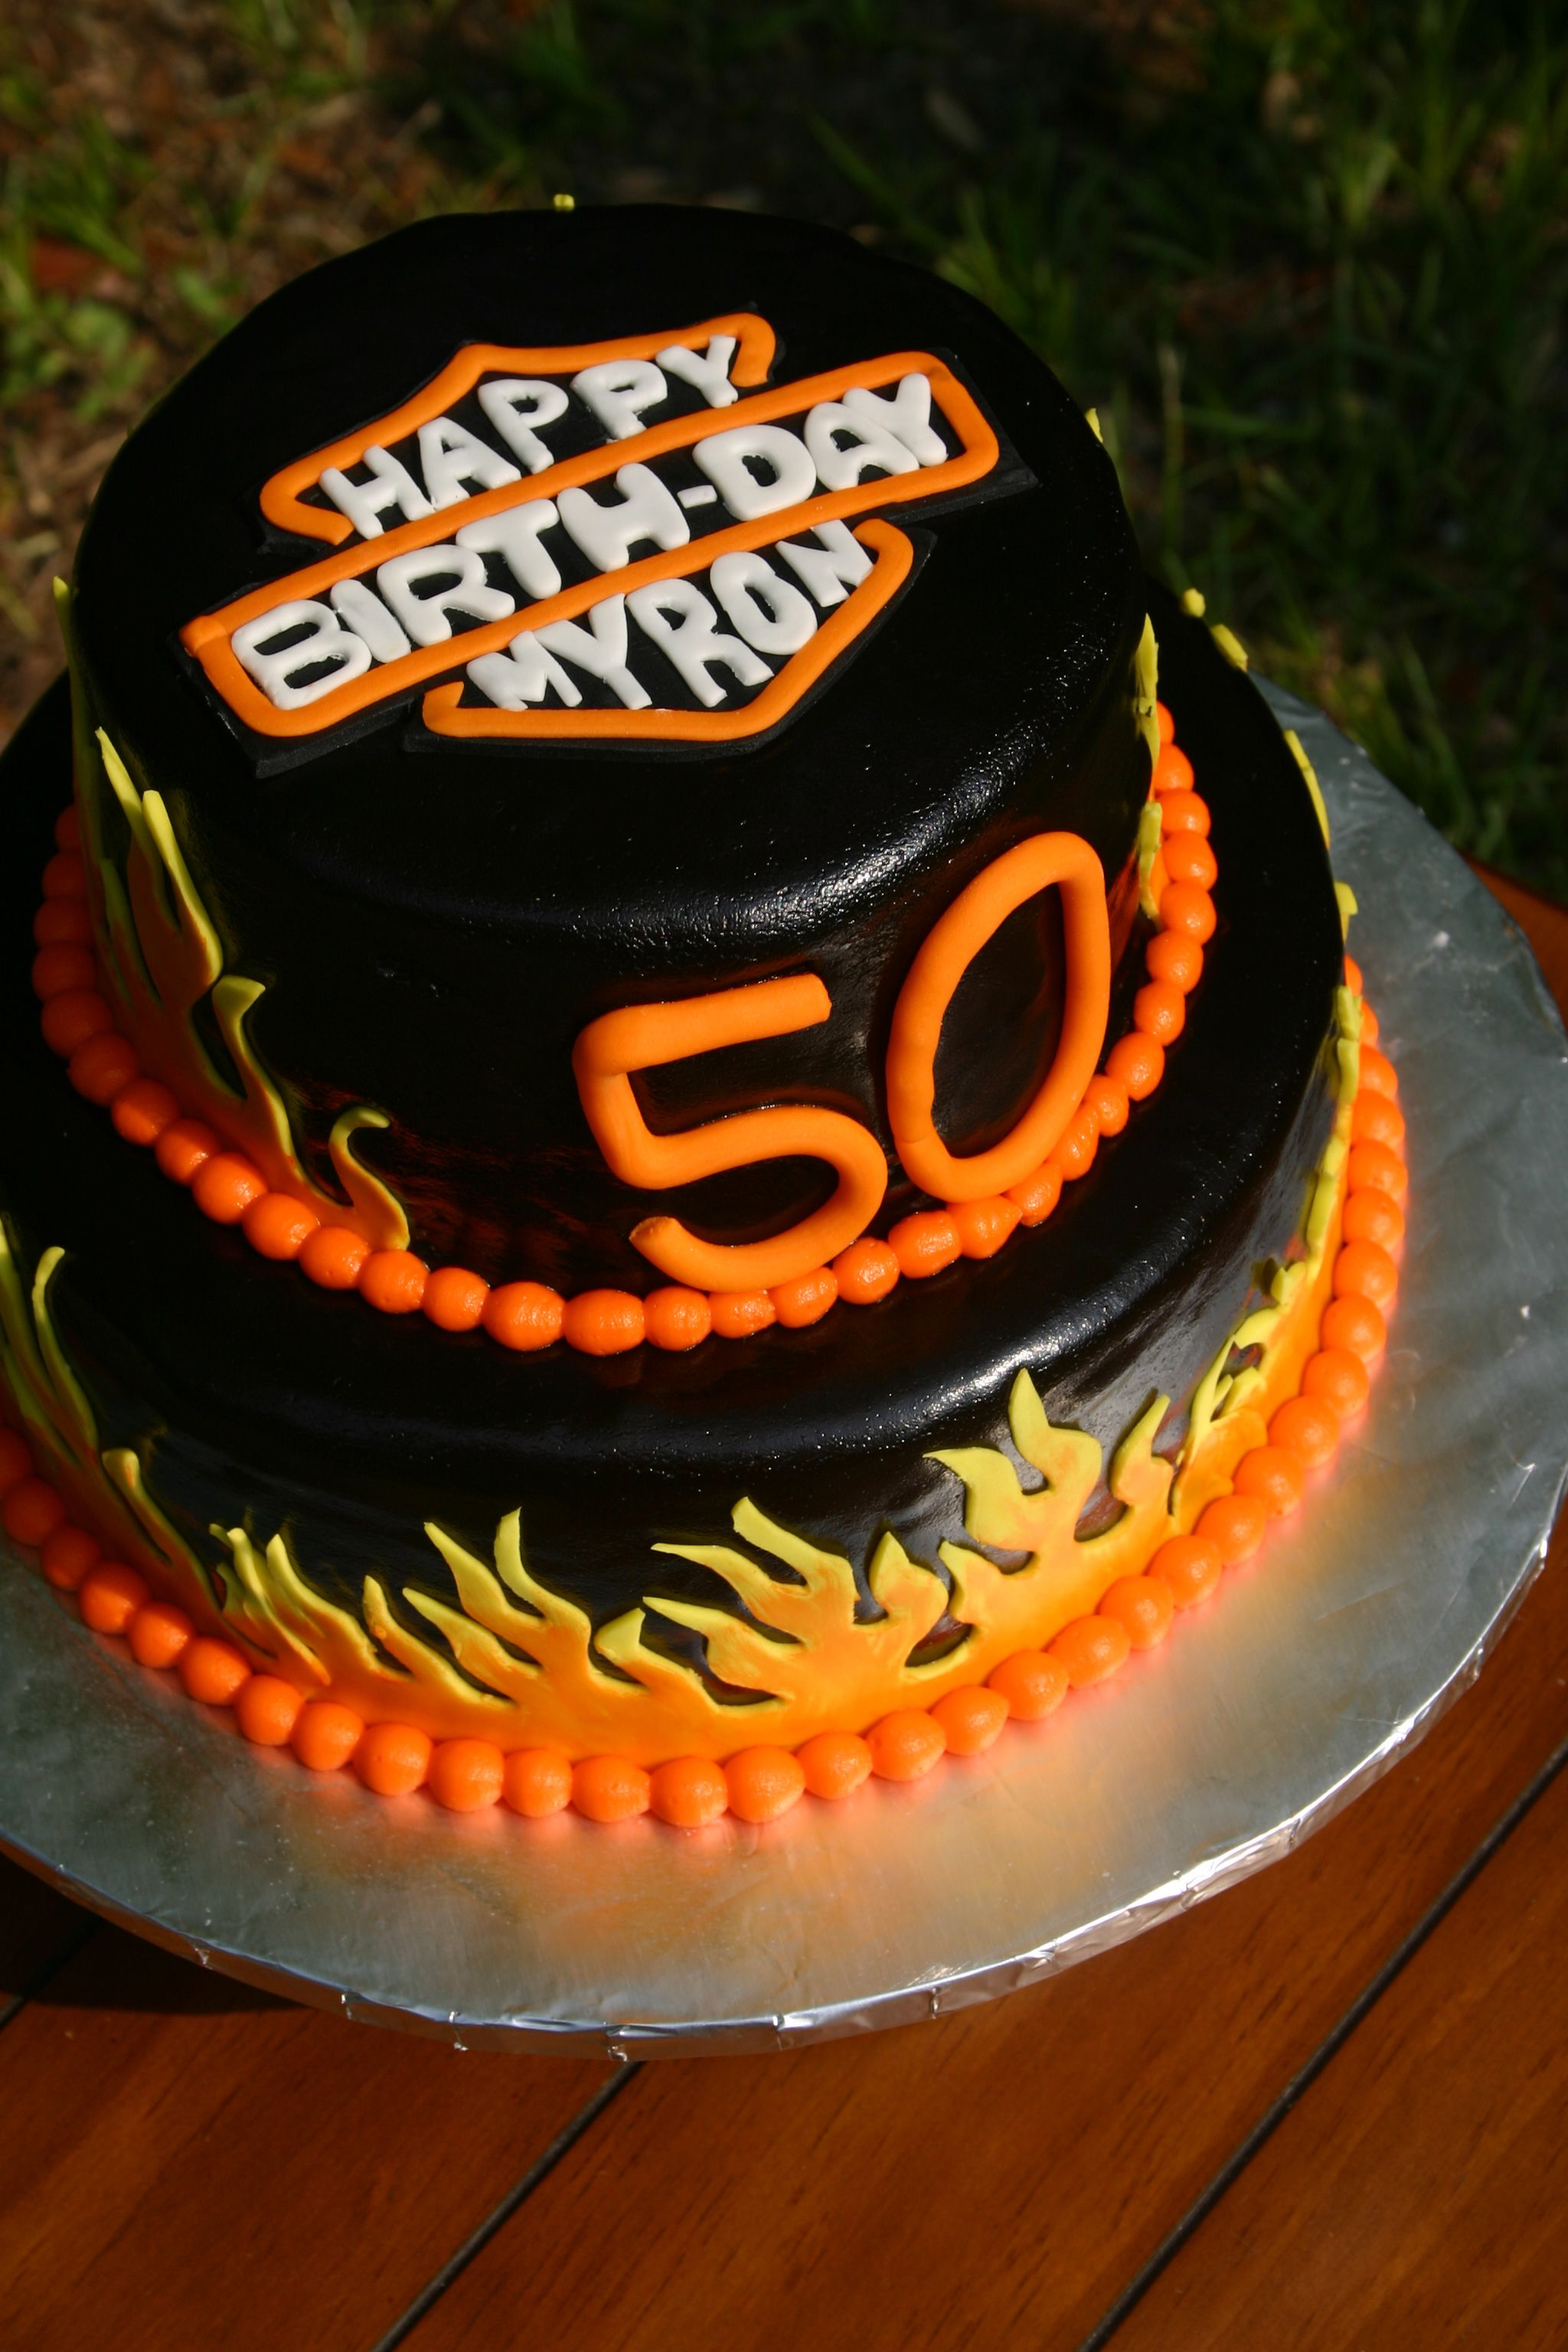 Harley Davidson Birthday logo cake 50th Birthday Party ideas